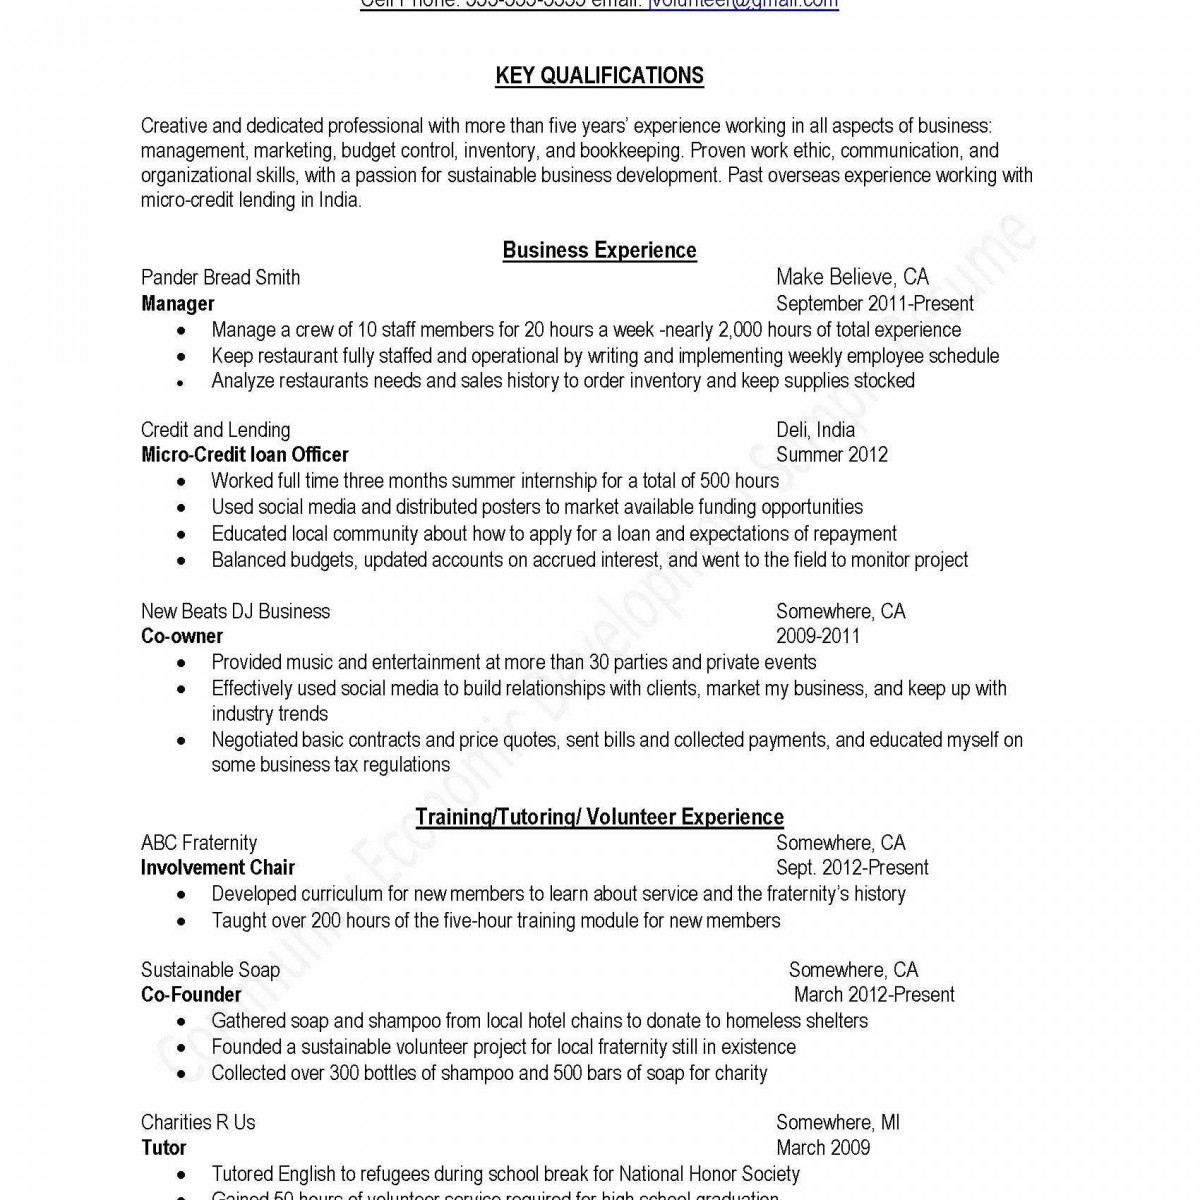 Resume Writing Tips - 36 Charming How to Make Resume for College Application N8z